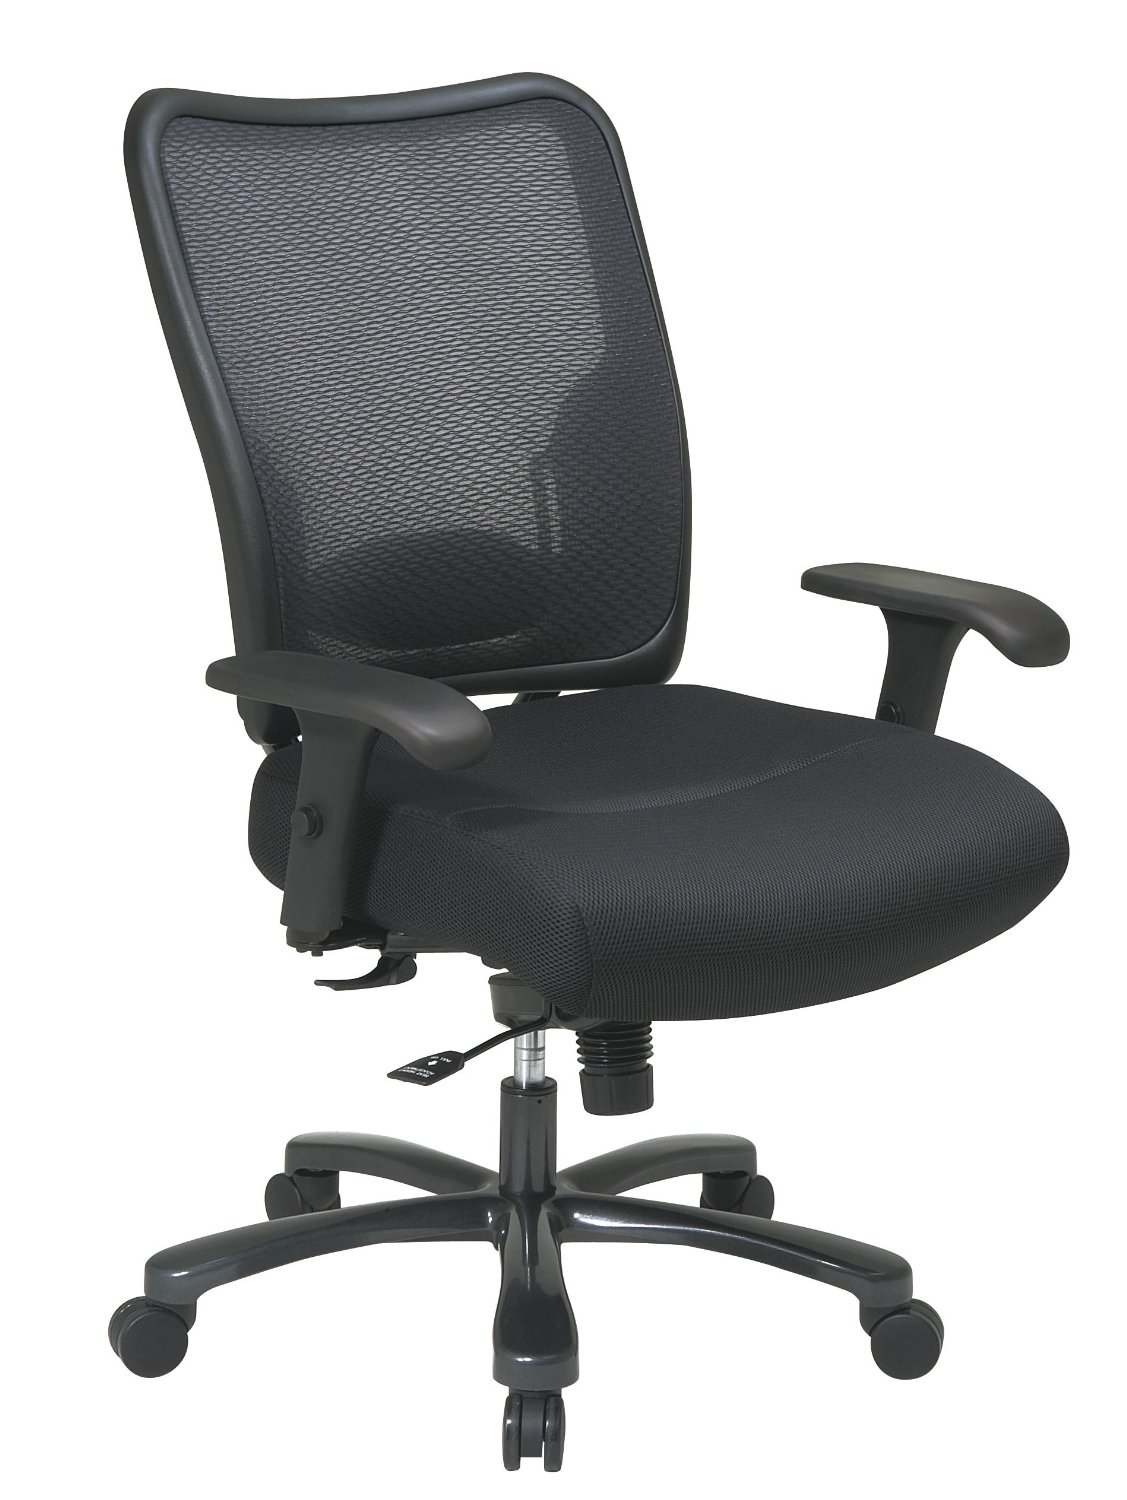 horse saddle office chair decorating contest ideas the top 4 chairs for back pain sufferers